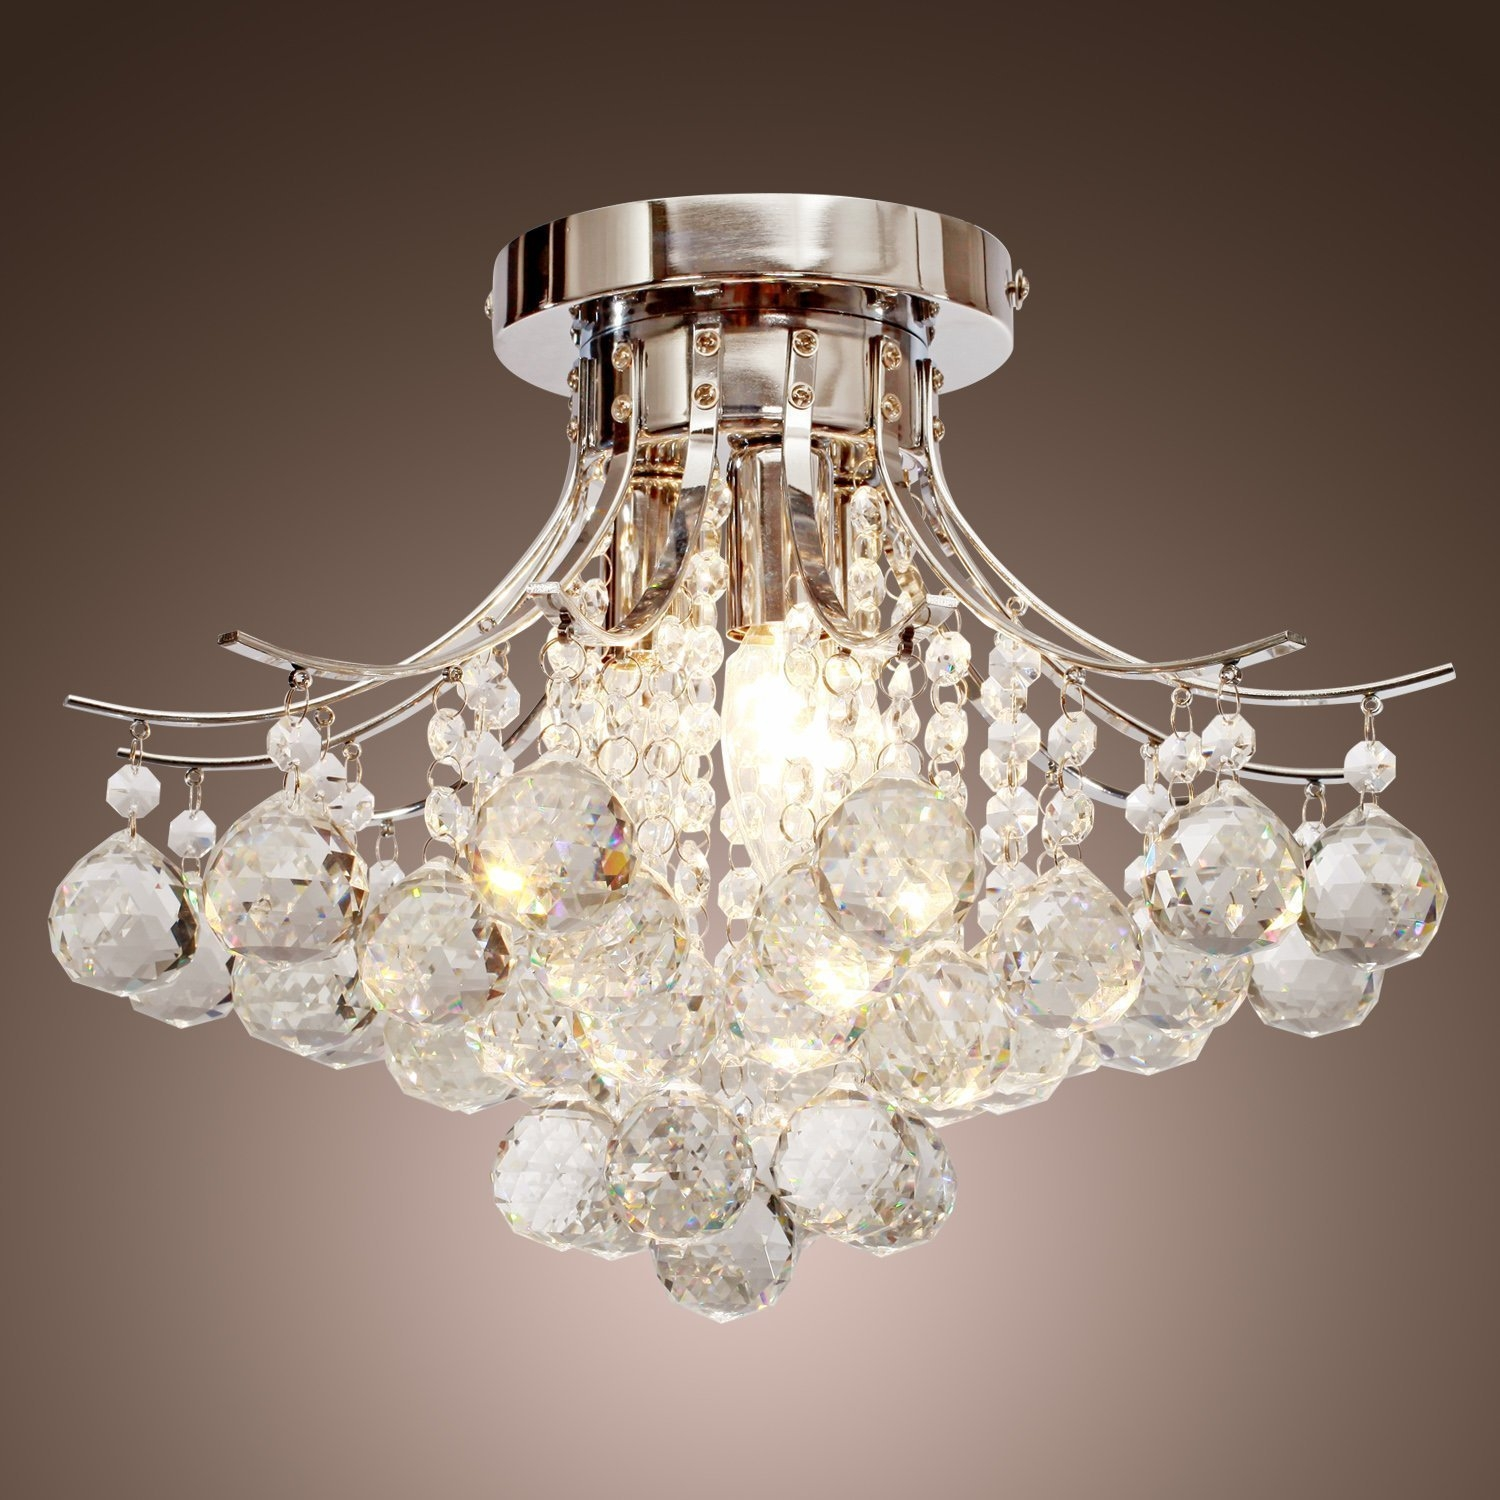 Chandeliers Amazon Lighting Ceiling Fans Ceiling Lights Regarding Small Chrome Chandelier (#6 of 12)